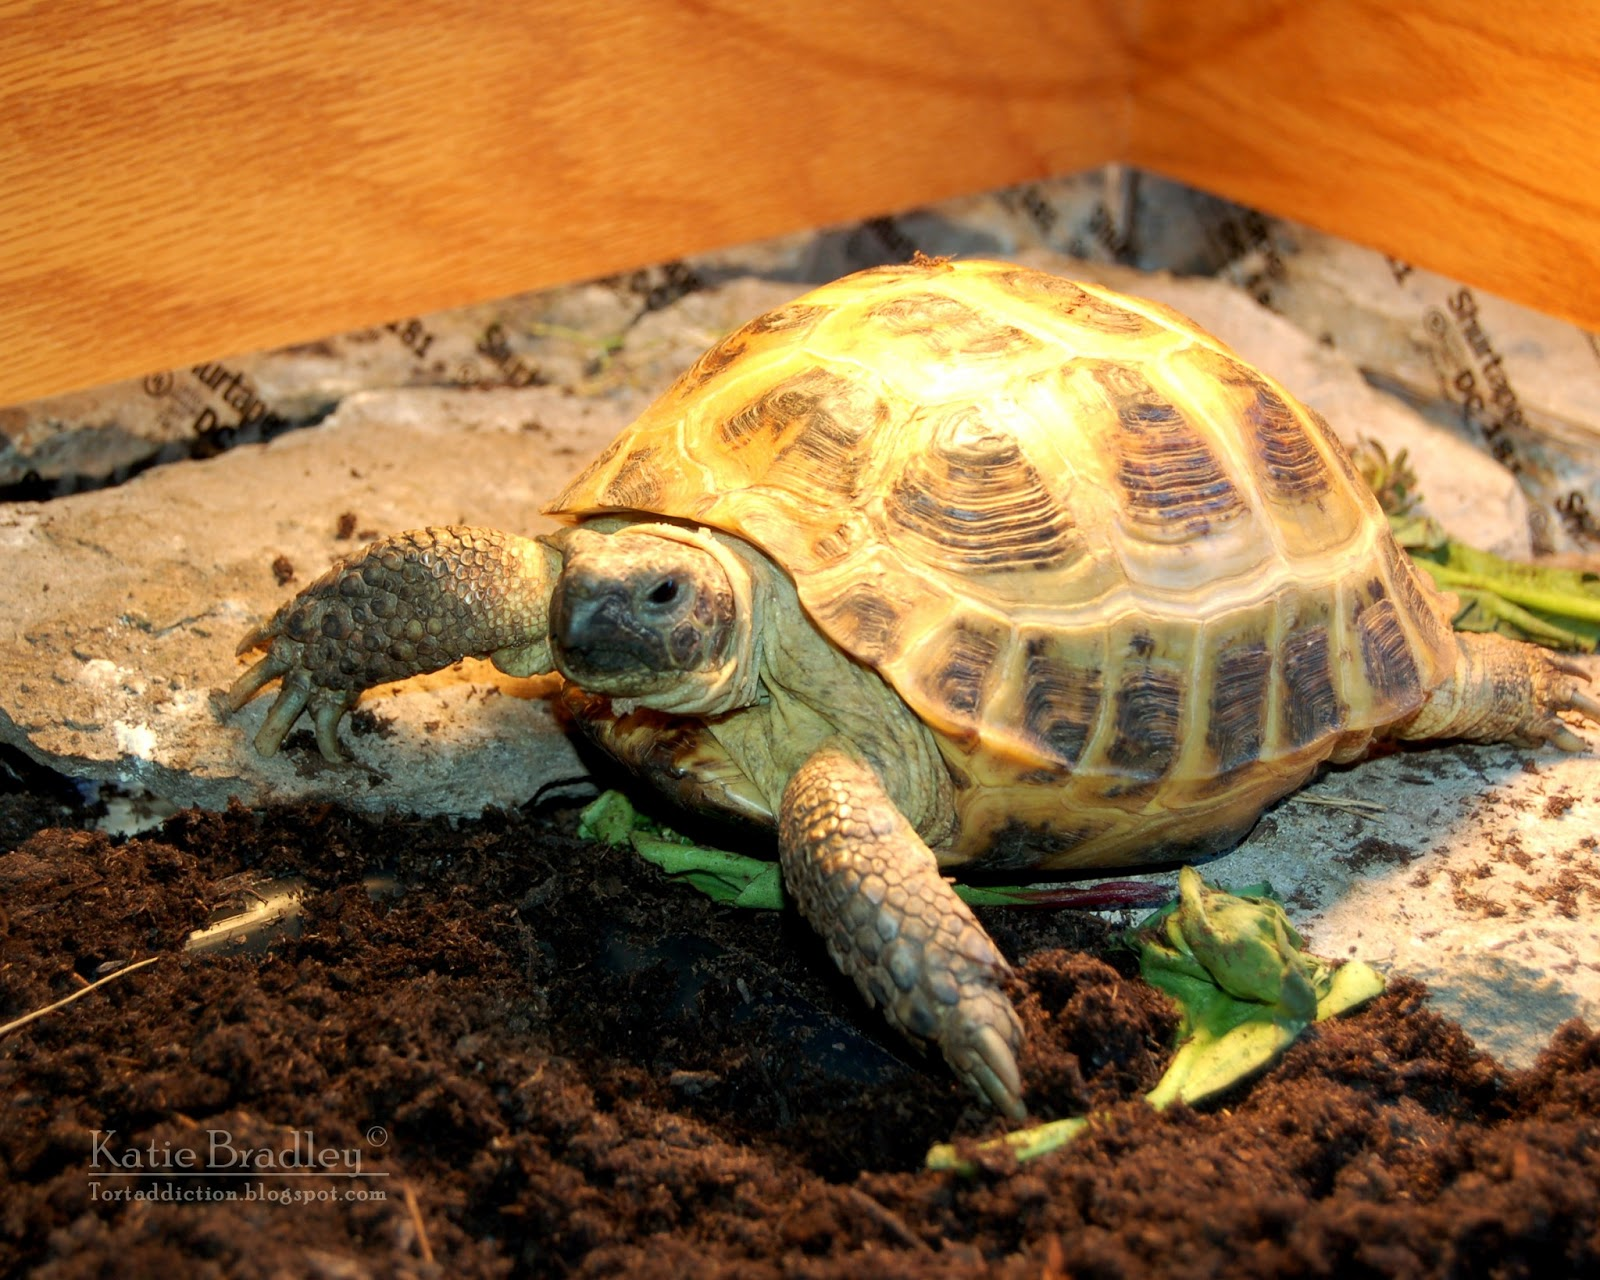 Tortaddiction how to build a tortoise table out of a bookshelf lady seems to really like her new space 100 better than the old mixing tub solutioingenieria Images